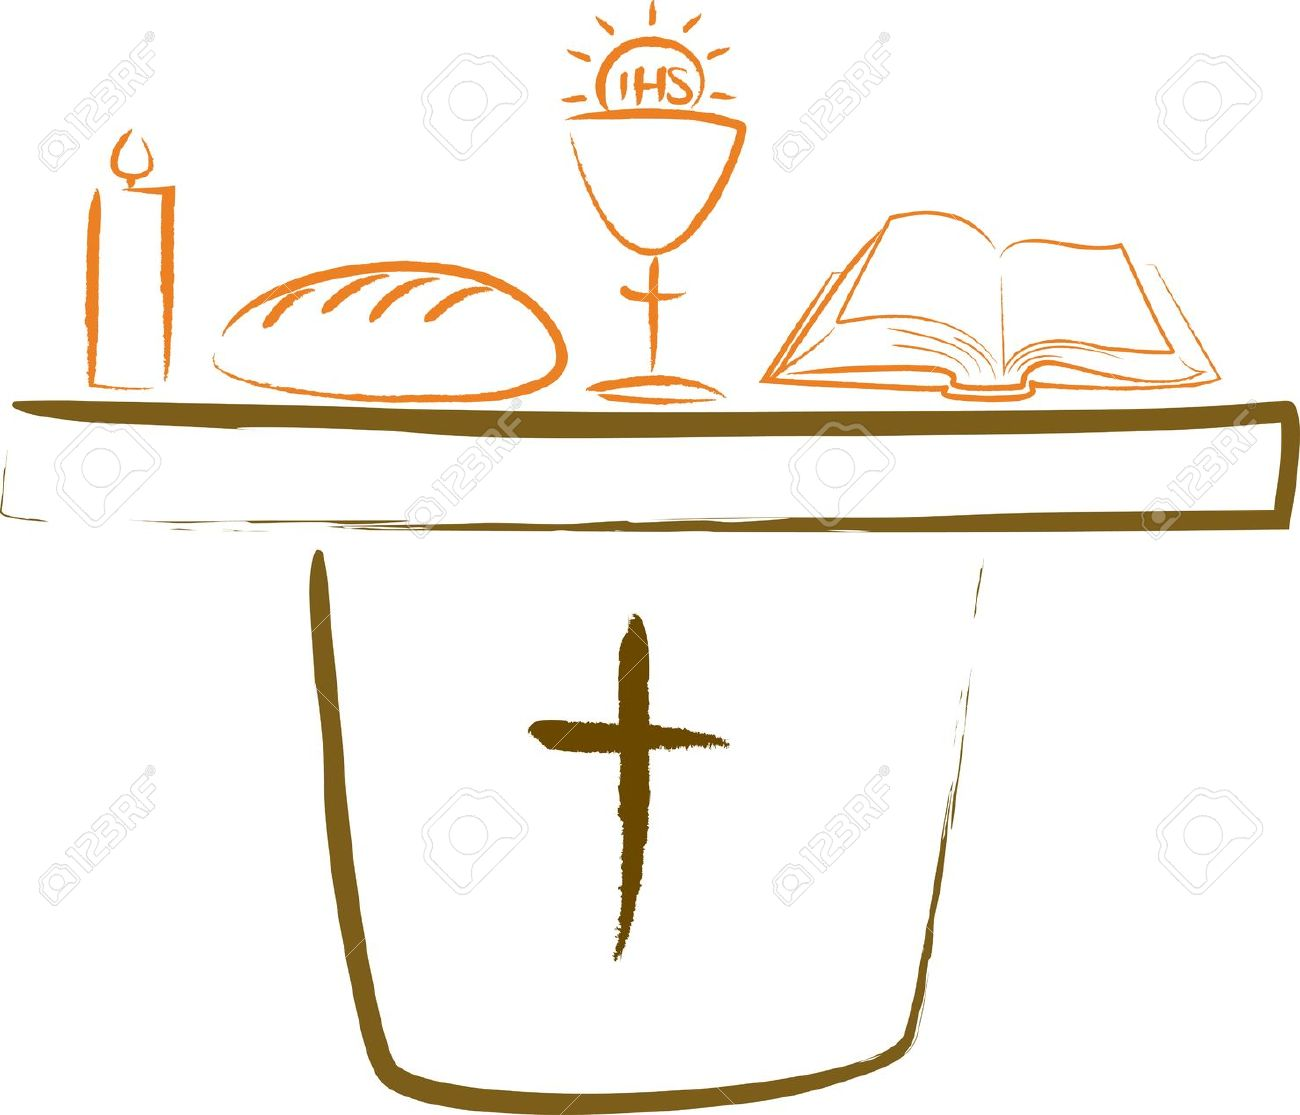 catholic church clipart at getdrawings com free for personal use rh getdrawings com catholic clipart and printables catholic clipart images